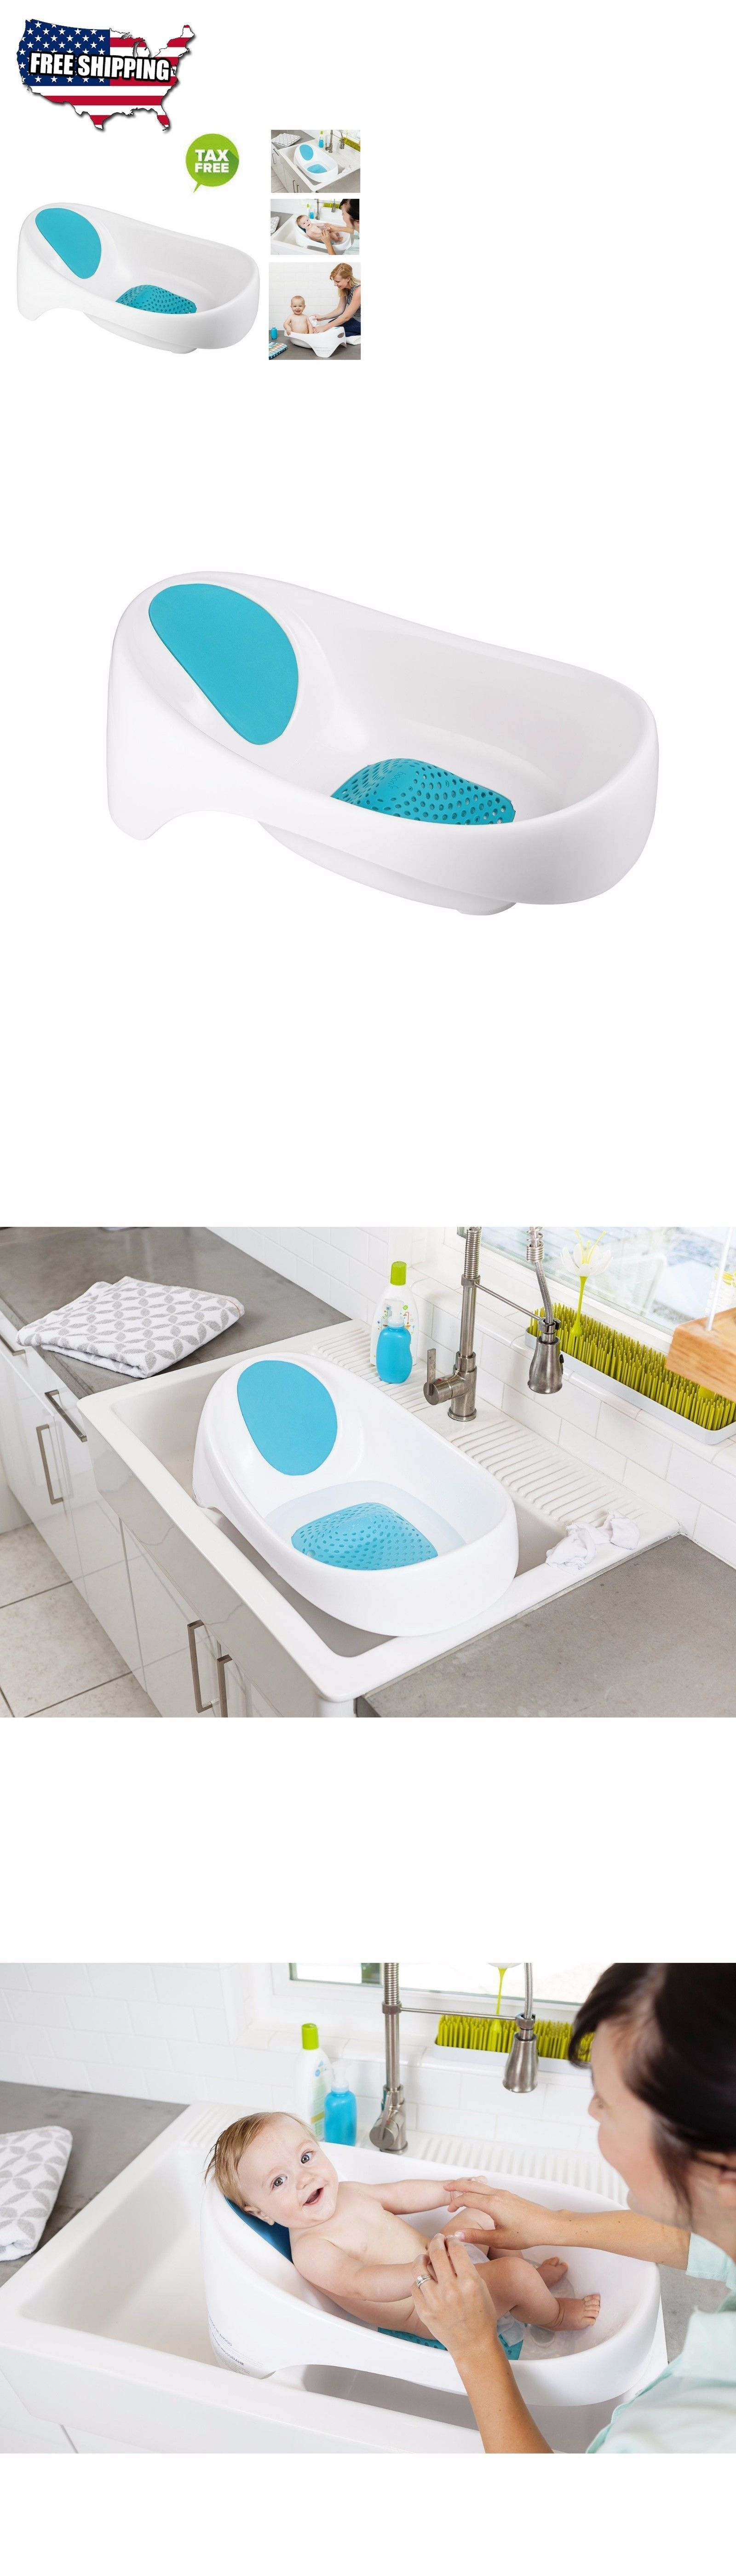 Baby Bath Seat For Sink Newborn Tub Bathtub Toddler Infant Chair ...